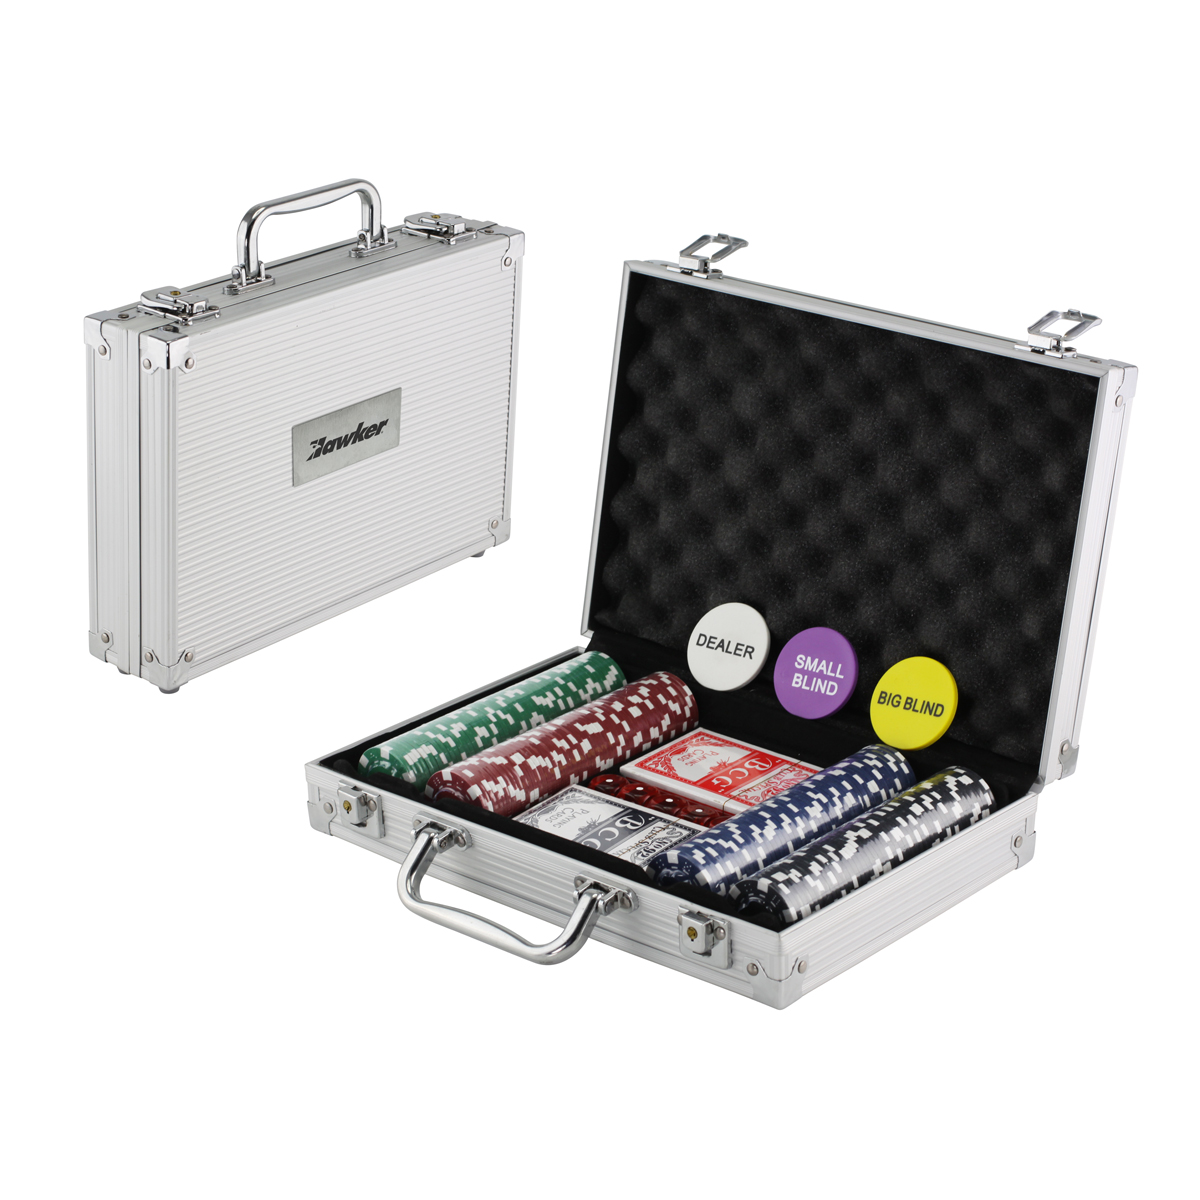 STEVE 200 PIECE ALUMINUM POKER SET